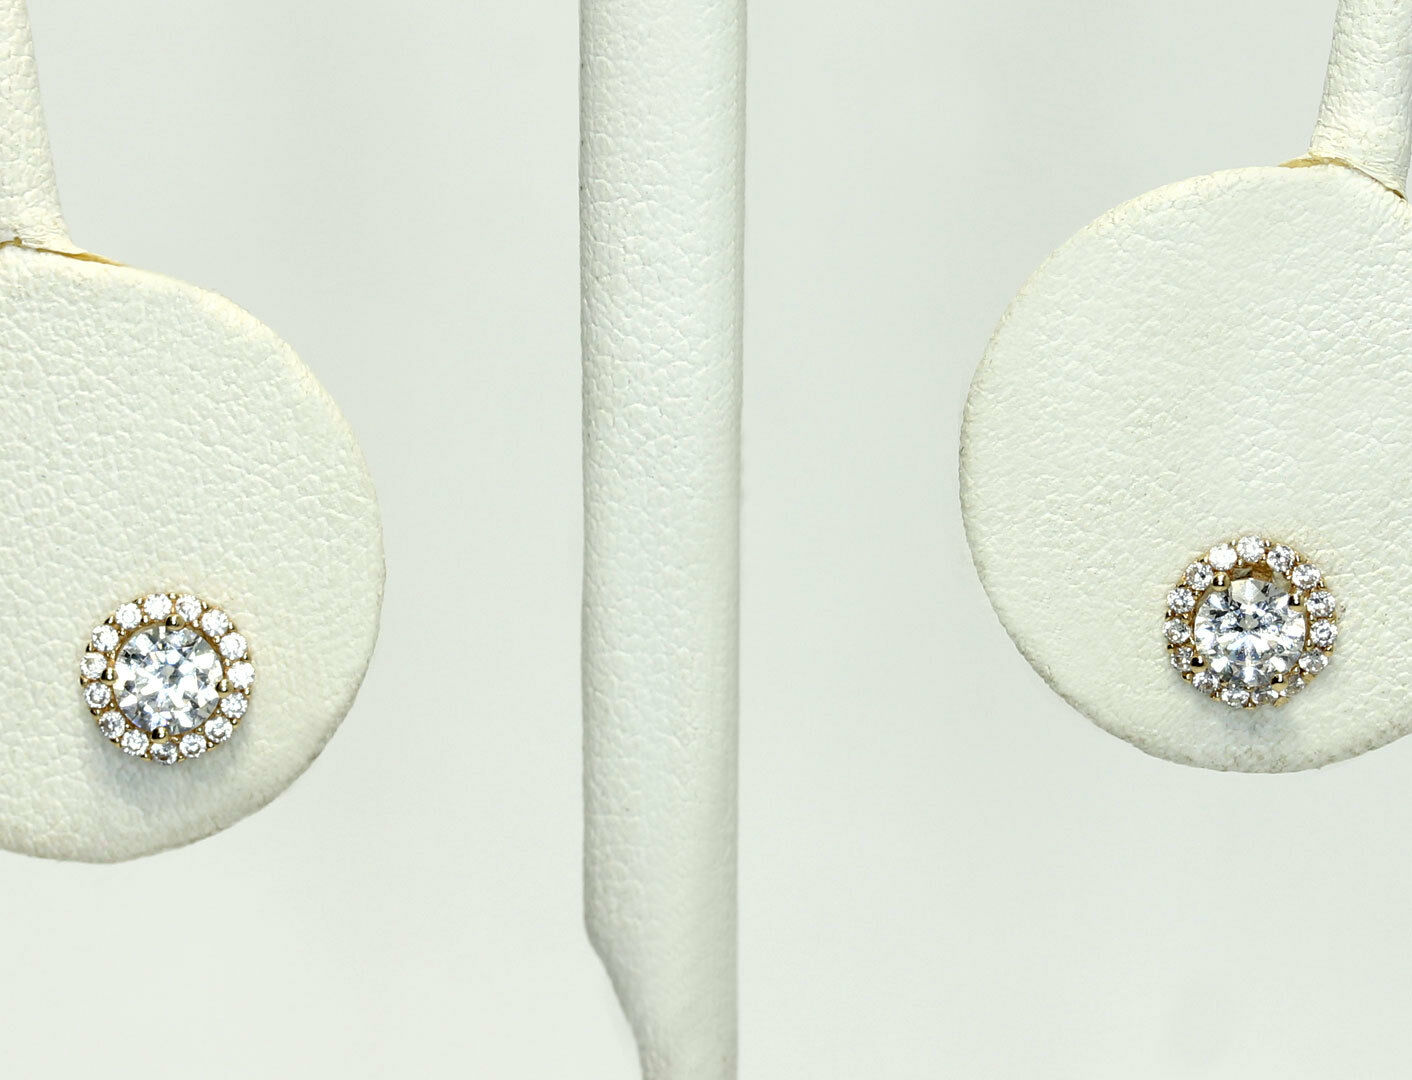 14k gold Round Cubic Zirconia Frame Circle Stud Earrings